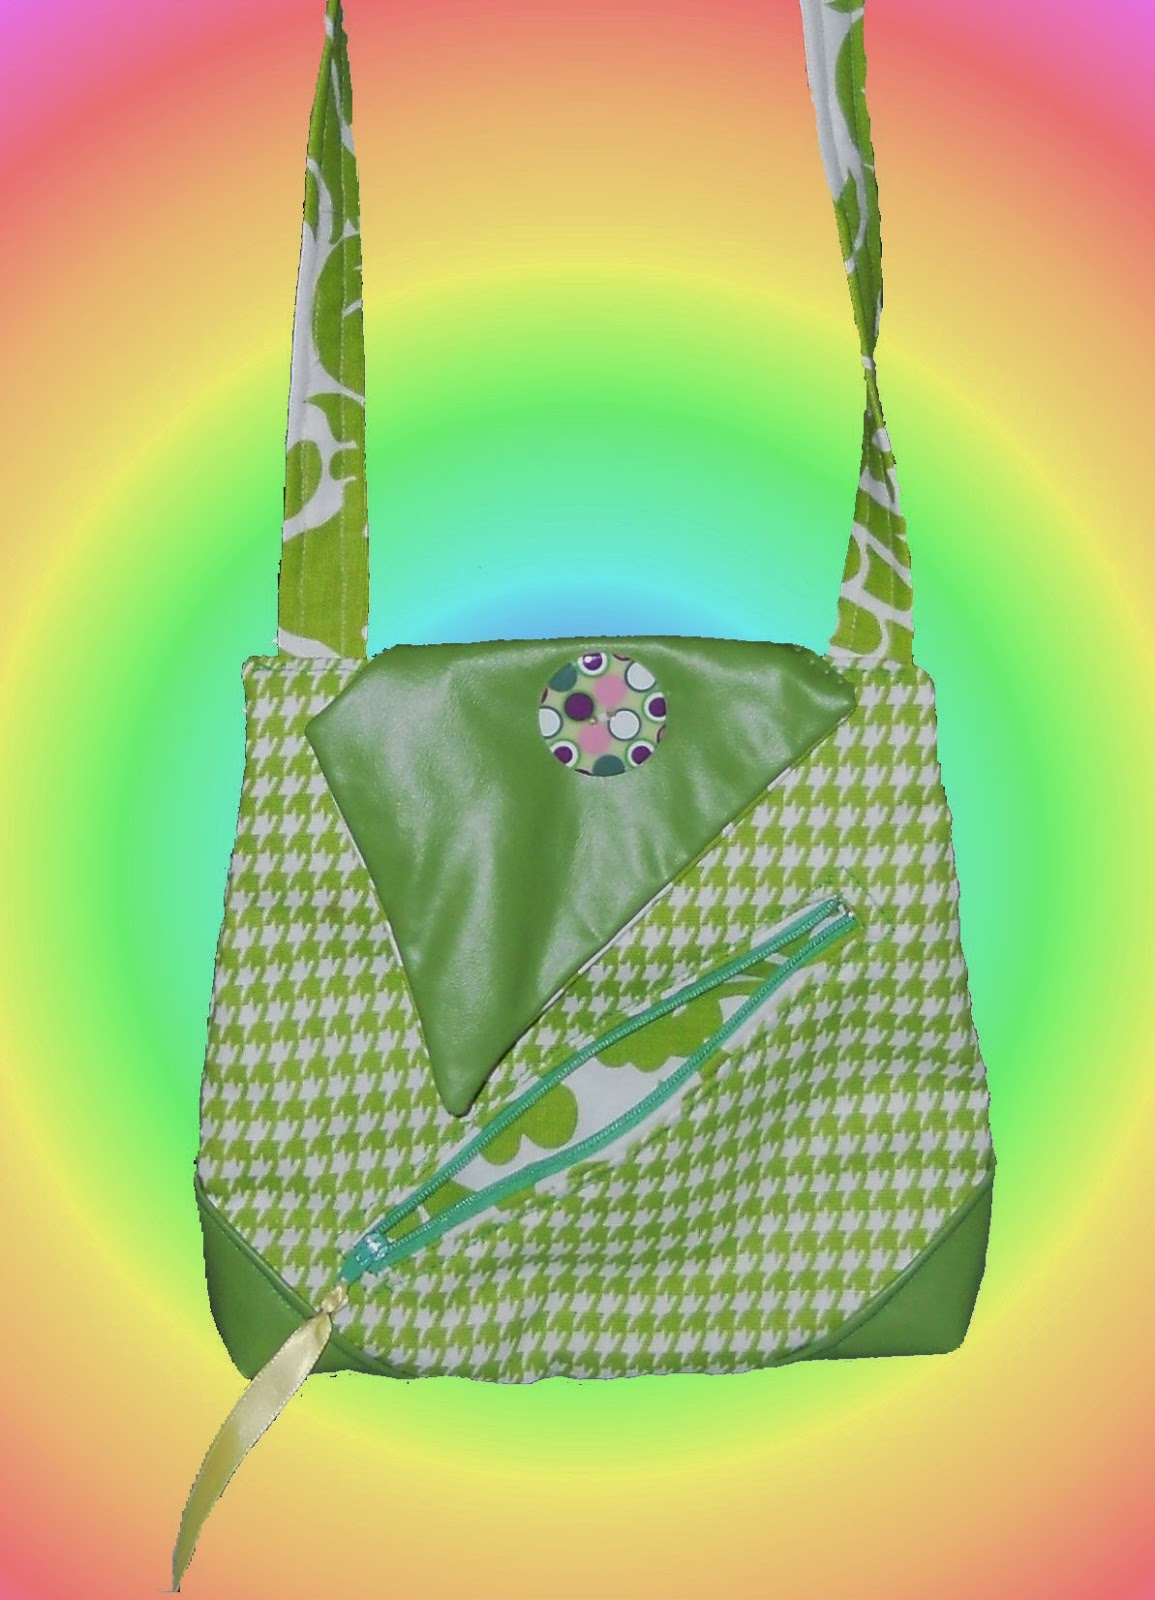 Hot Hues Convertible Crossbody Fooler Bag designed by eSheep Designs